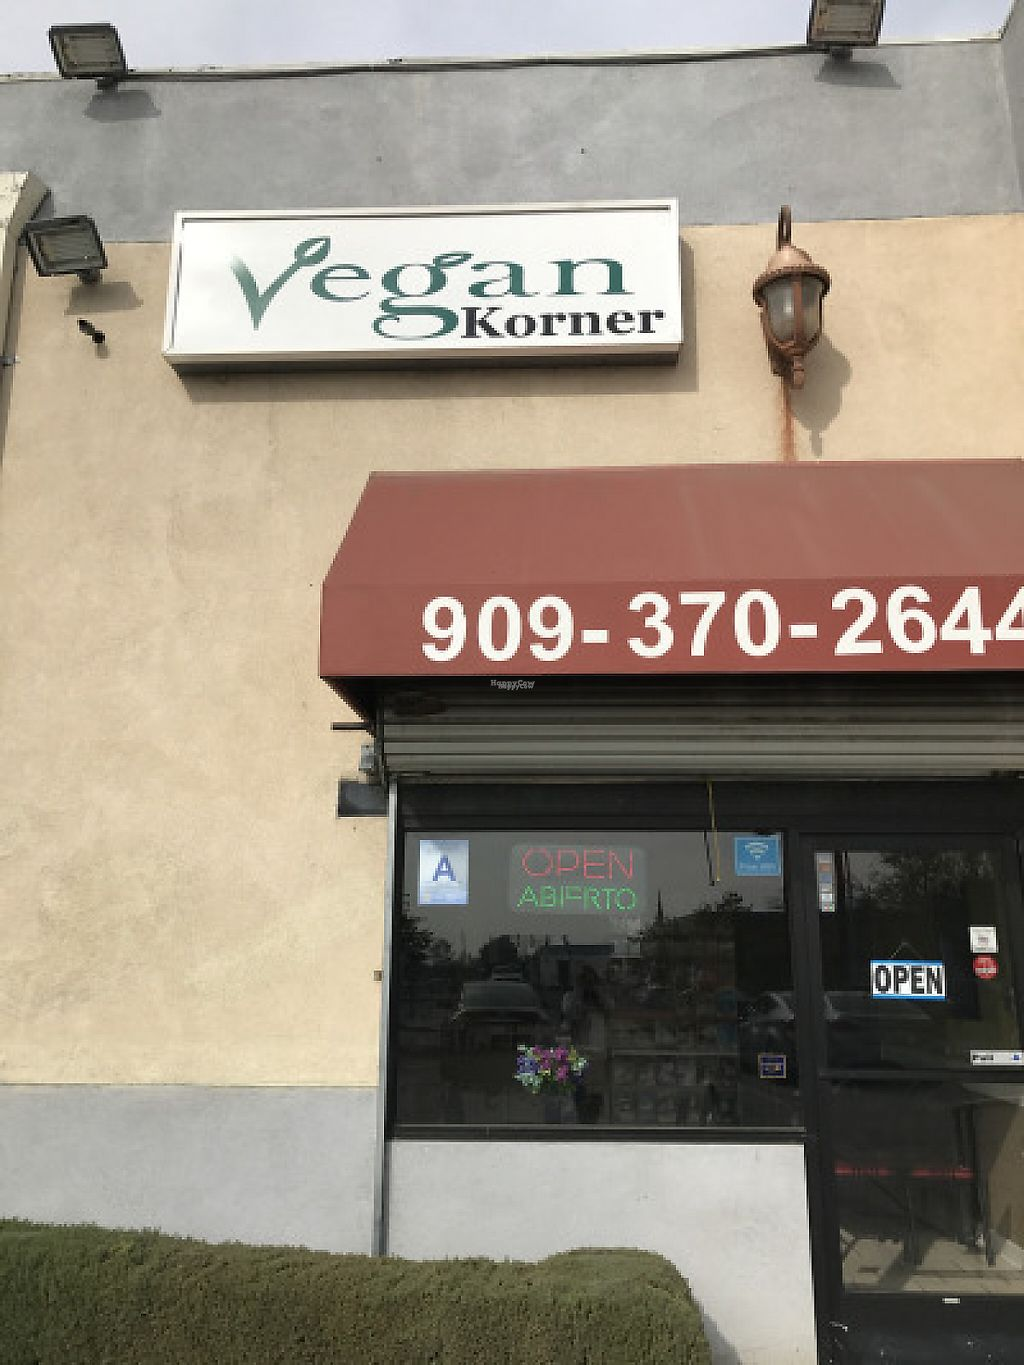 "Photo of Vegan Korner  by <a href=""/members/profile/yulie1022"">yulie1022</a> <br/>Front of the Pizza Shop <br/> November 17, 2016  - <a href='/contact/abuse/image/22520/191493'>Report</a>"